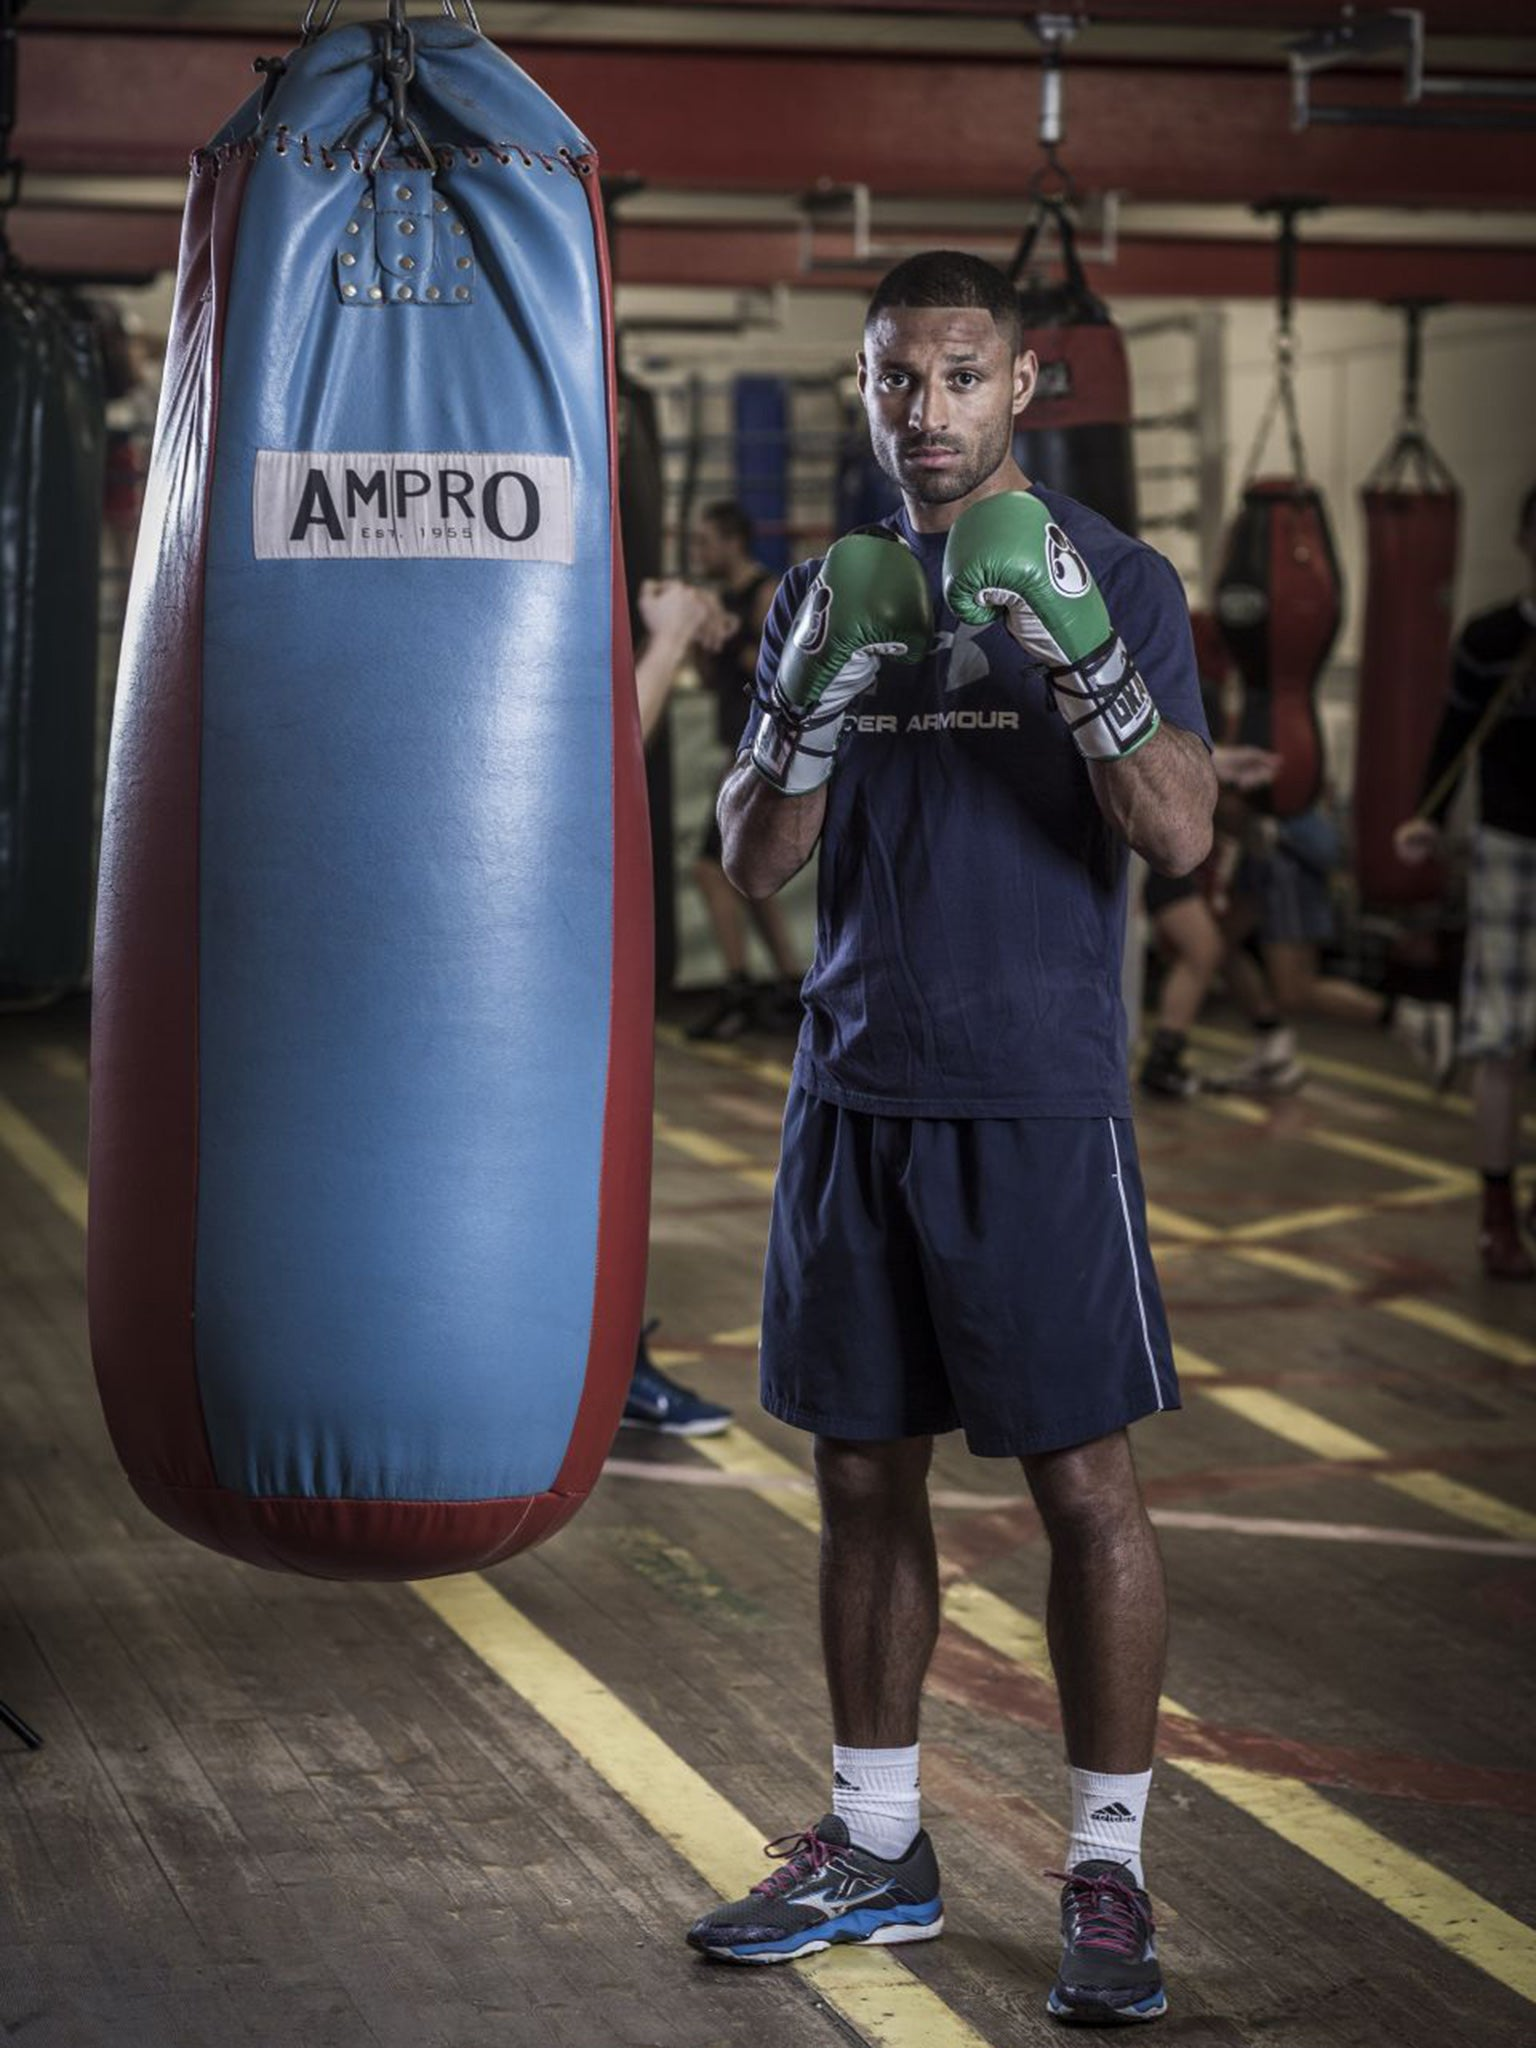 Kell Brook confirms split from Dominic Ingle but denies they've